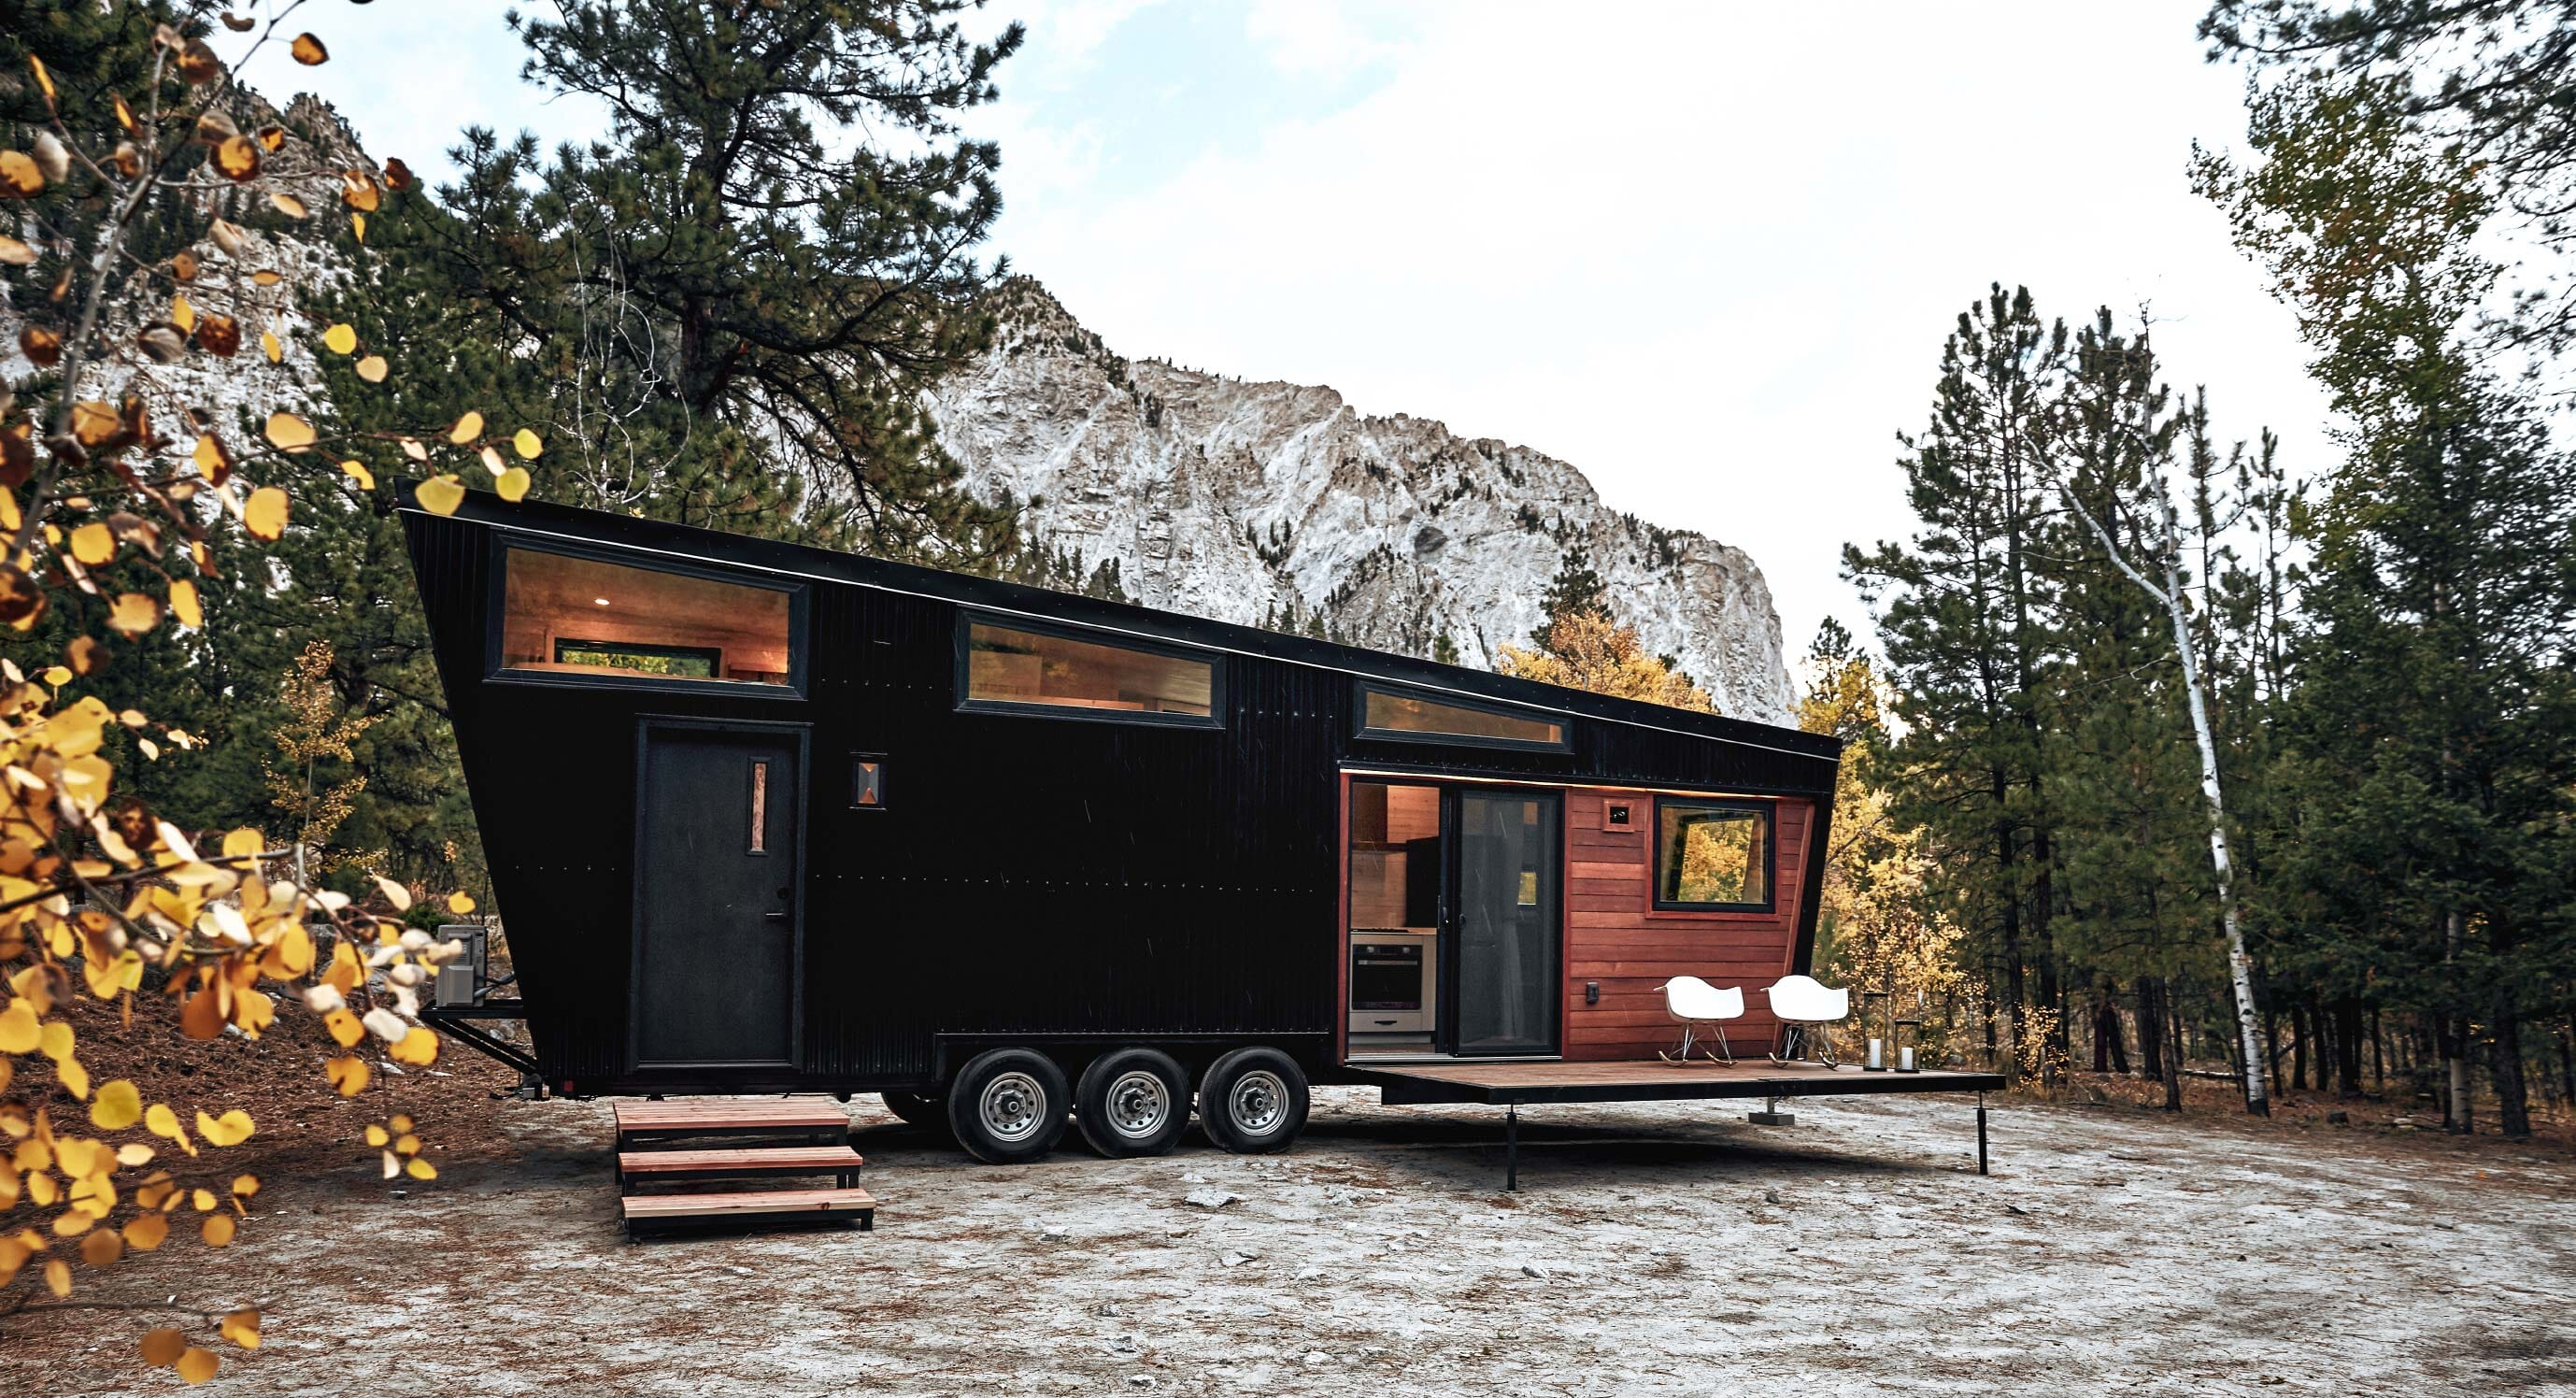 This Land Ark RV Draper Bridges The Gap Between Mobile House and Home